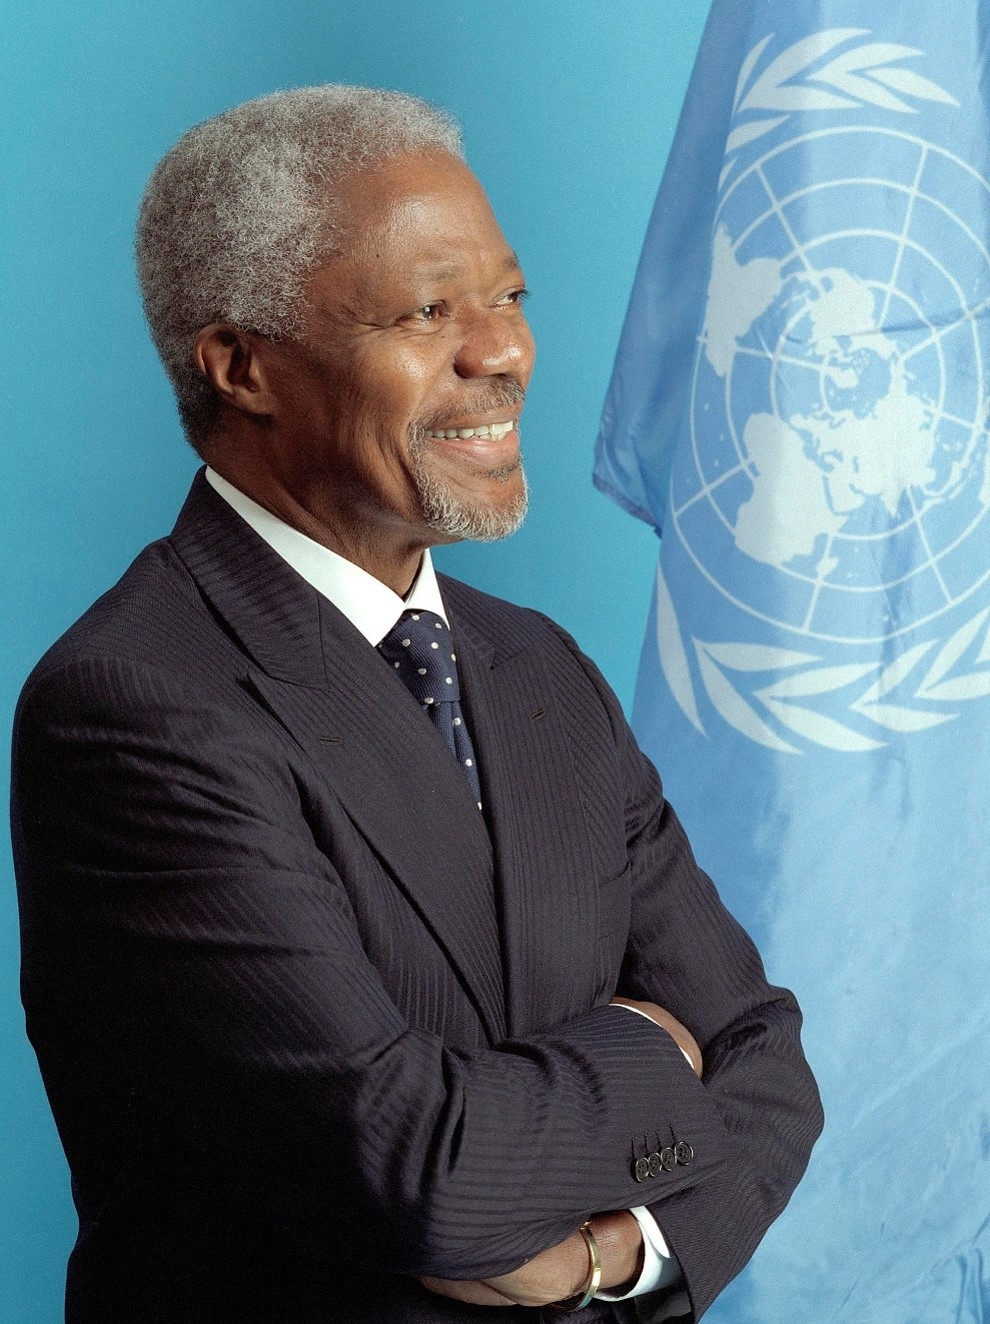 Secretary-General Kofi Annan, official portrait. UN Photo/Evan Schneider